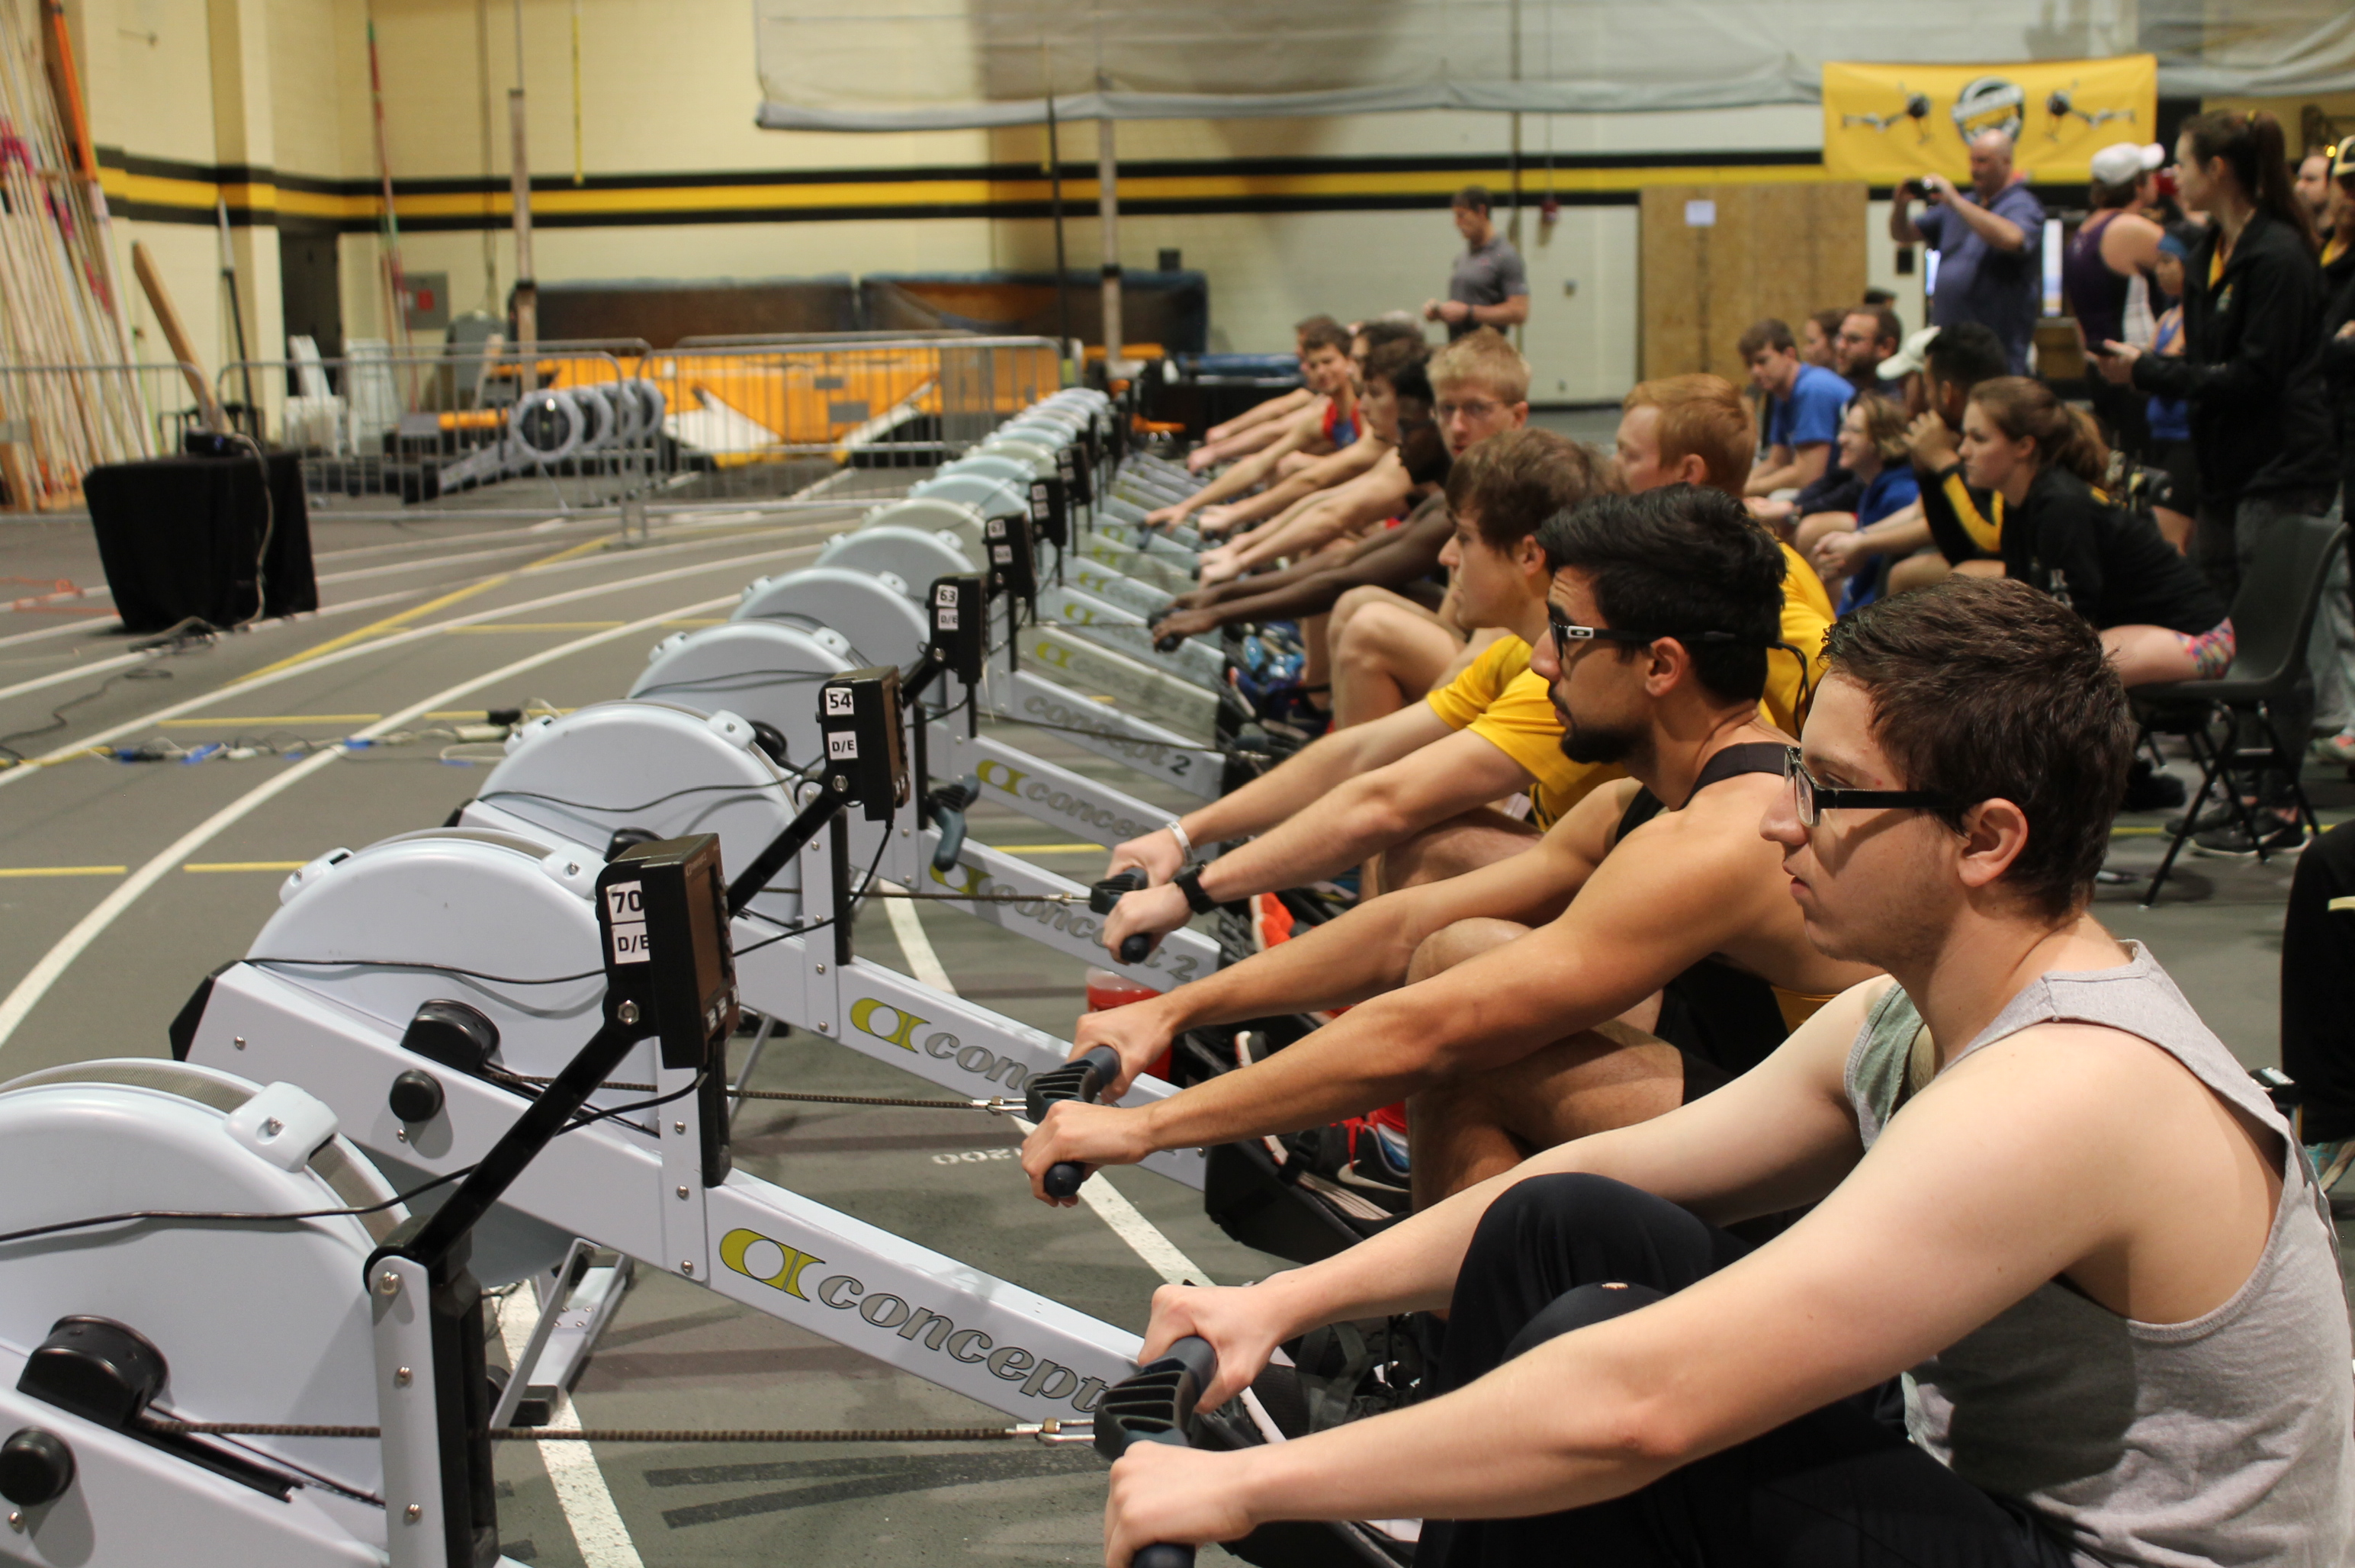 Looking down the row of ergometers at shocker sprints. its a men's event, and everyone is holding, waiting for the race to begin